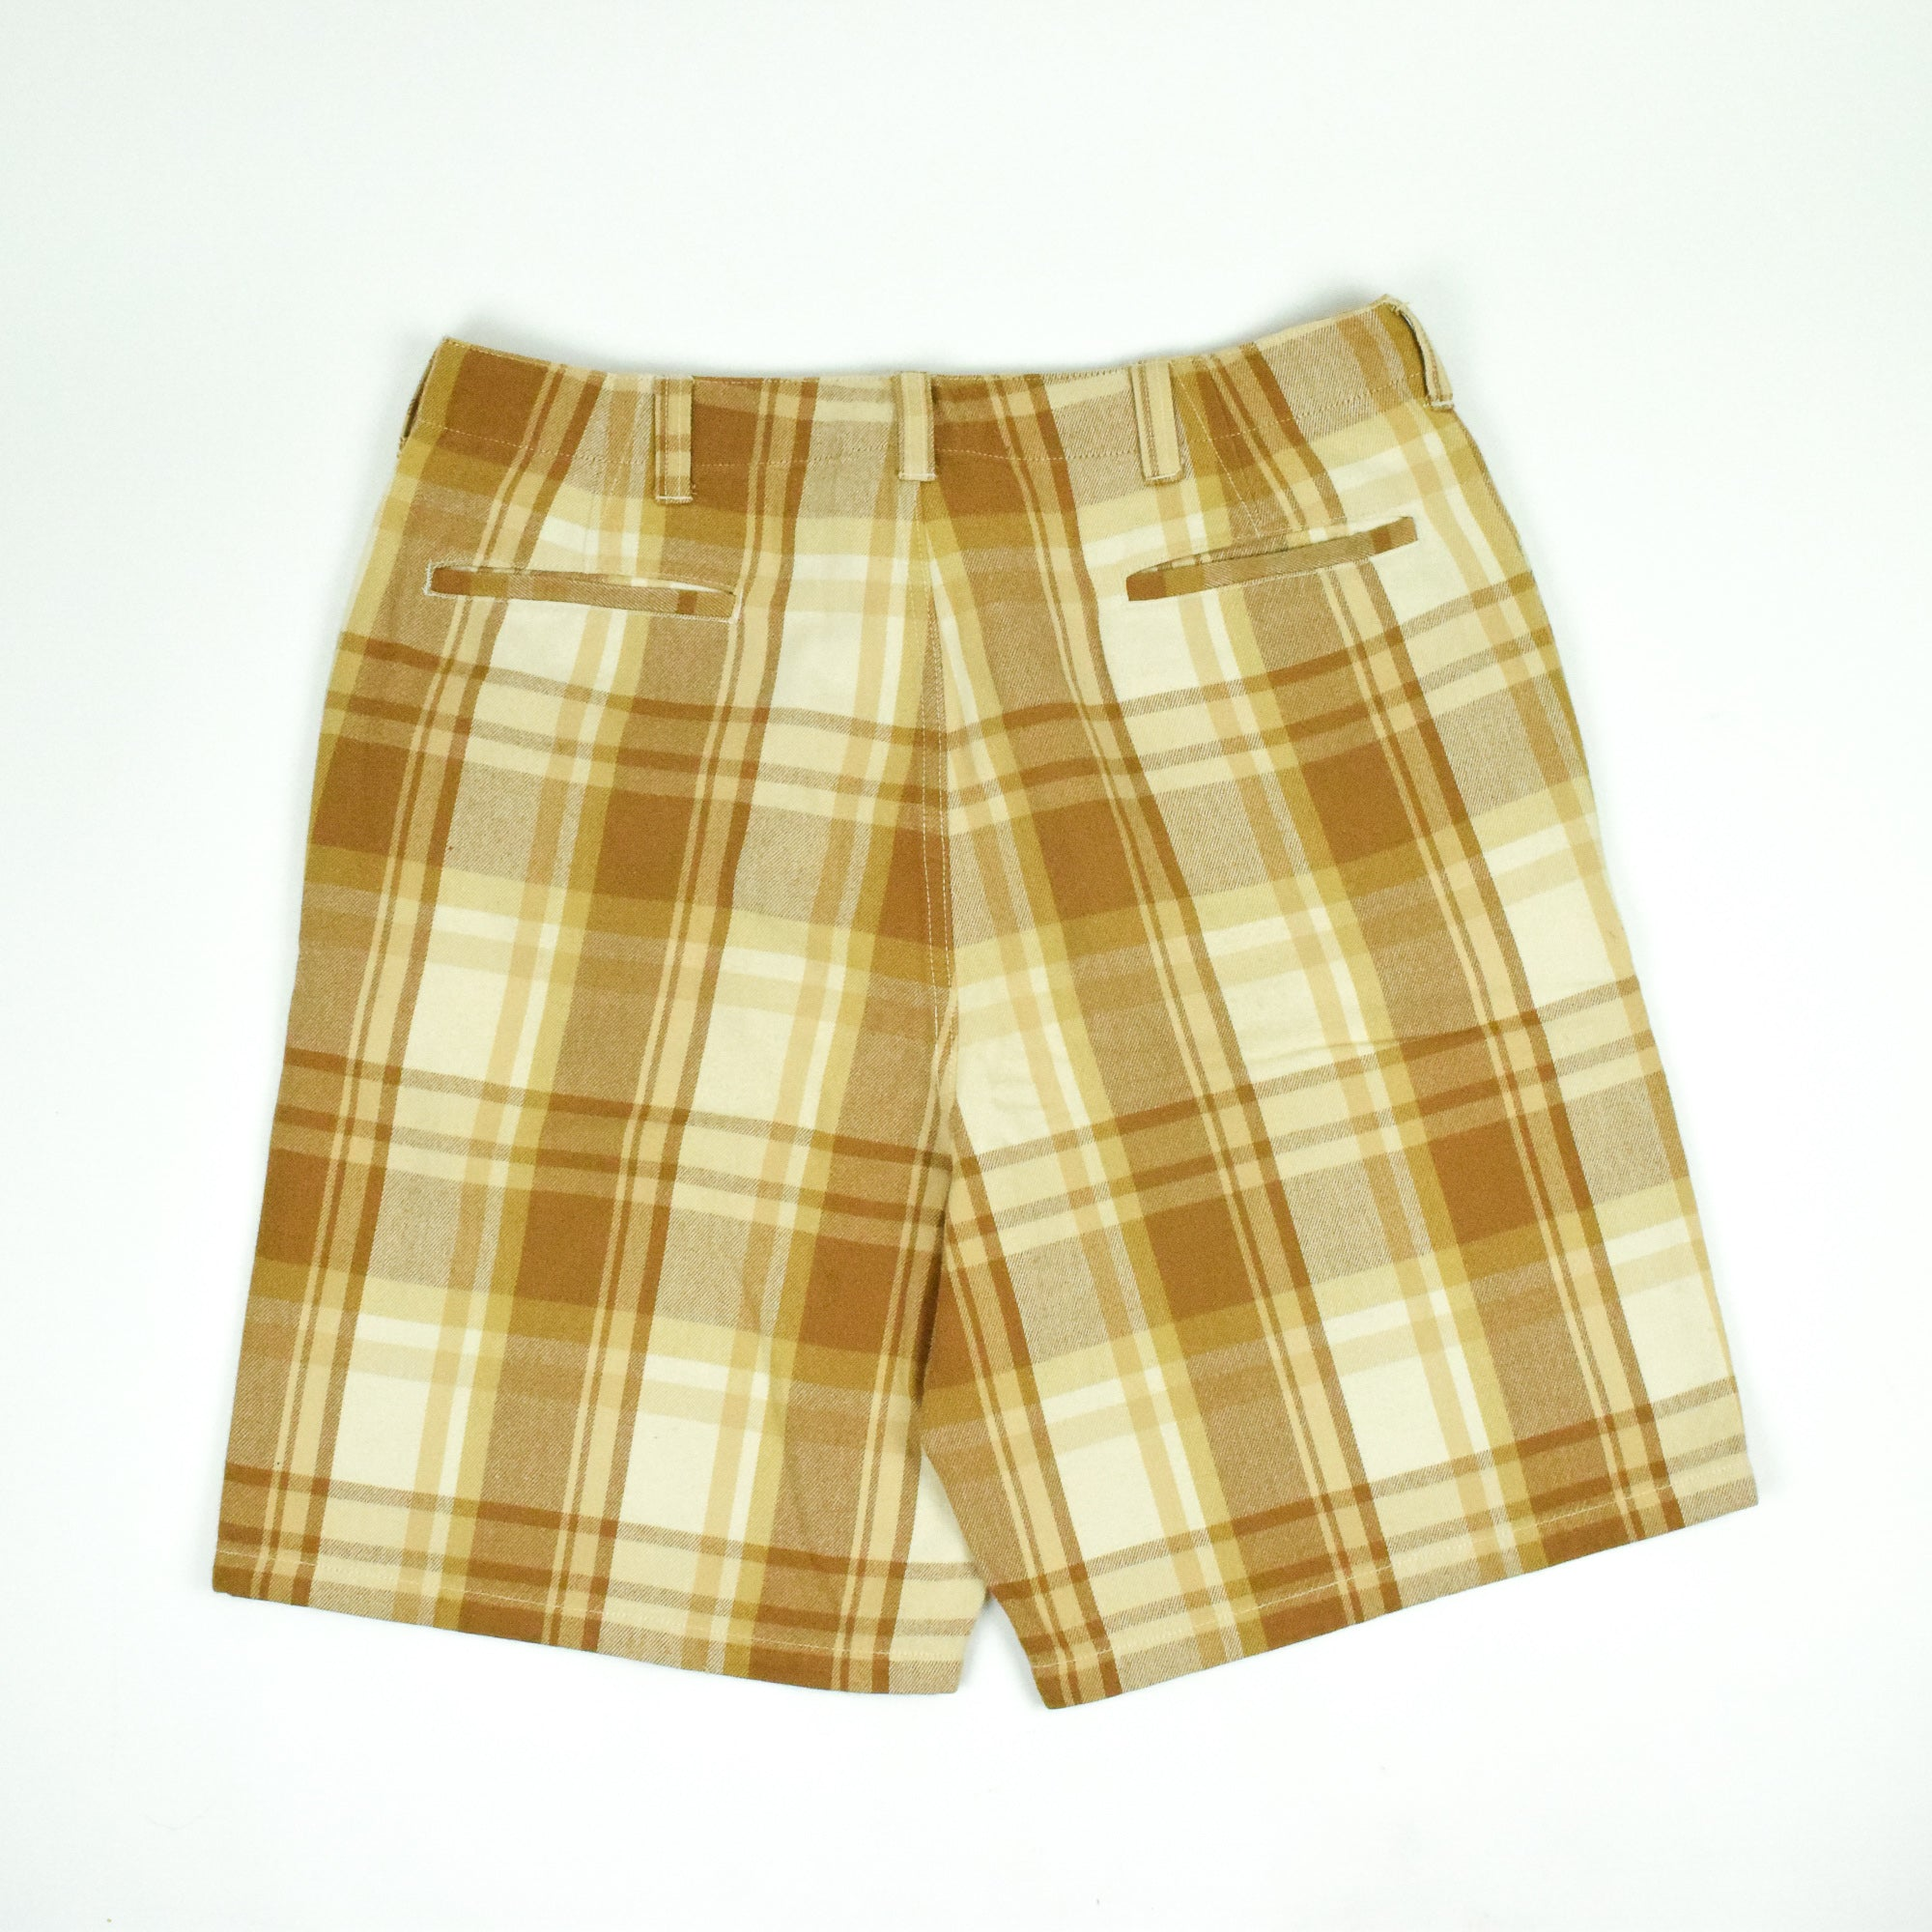 "A Bathing Ape ""Burberry Style"" Shorts"